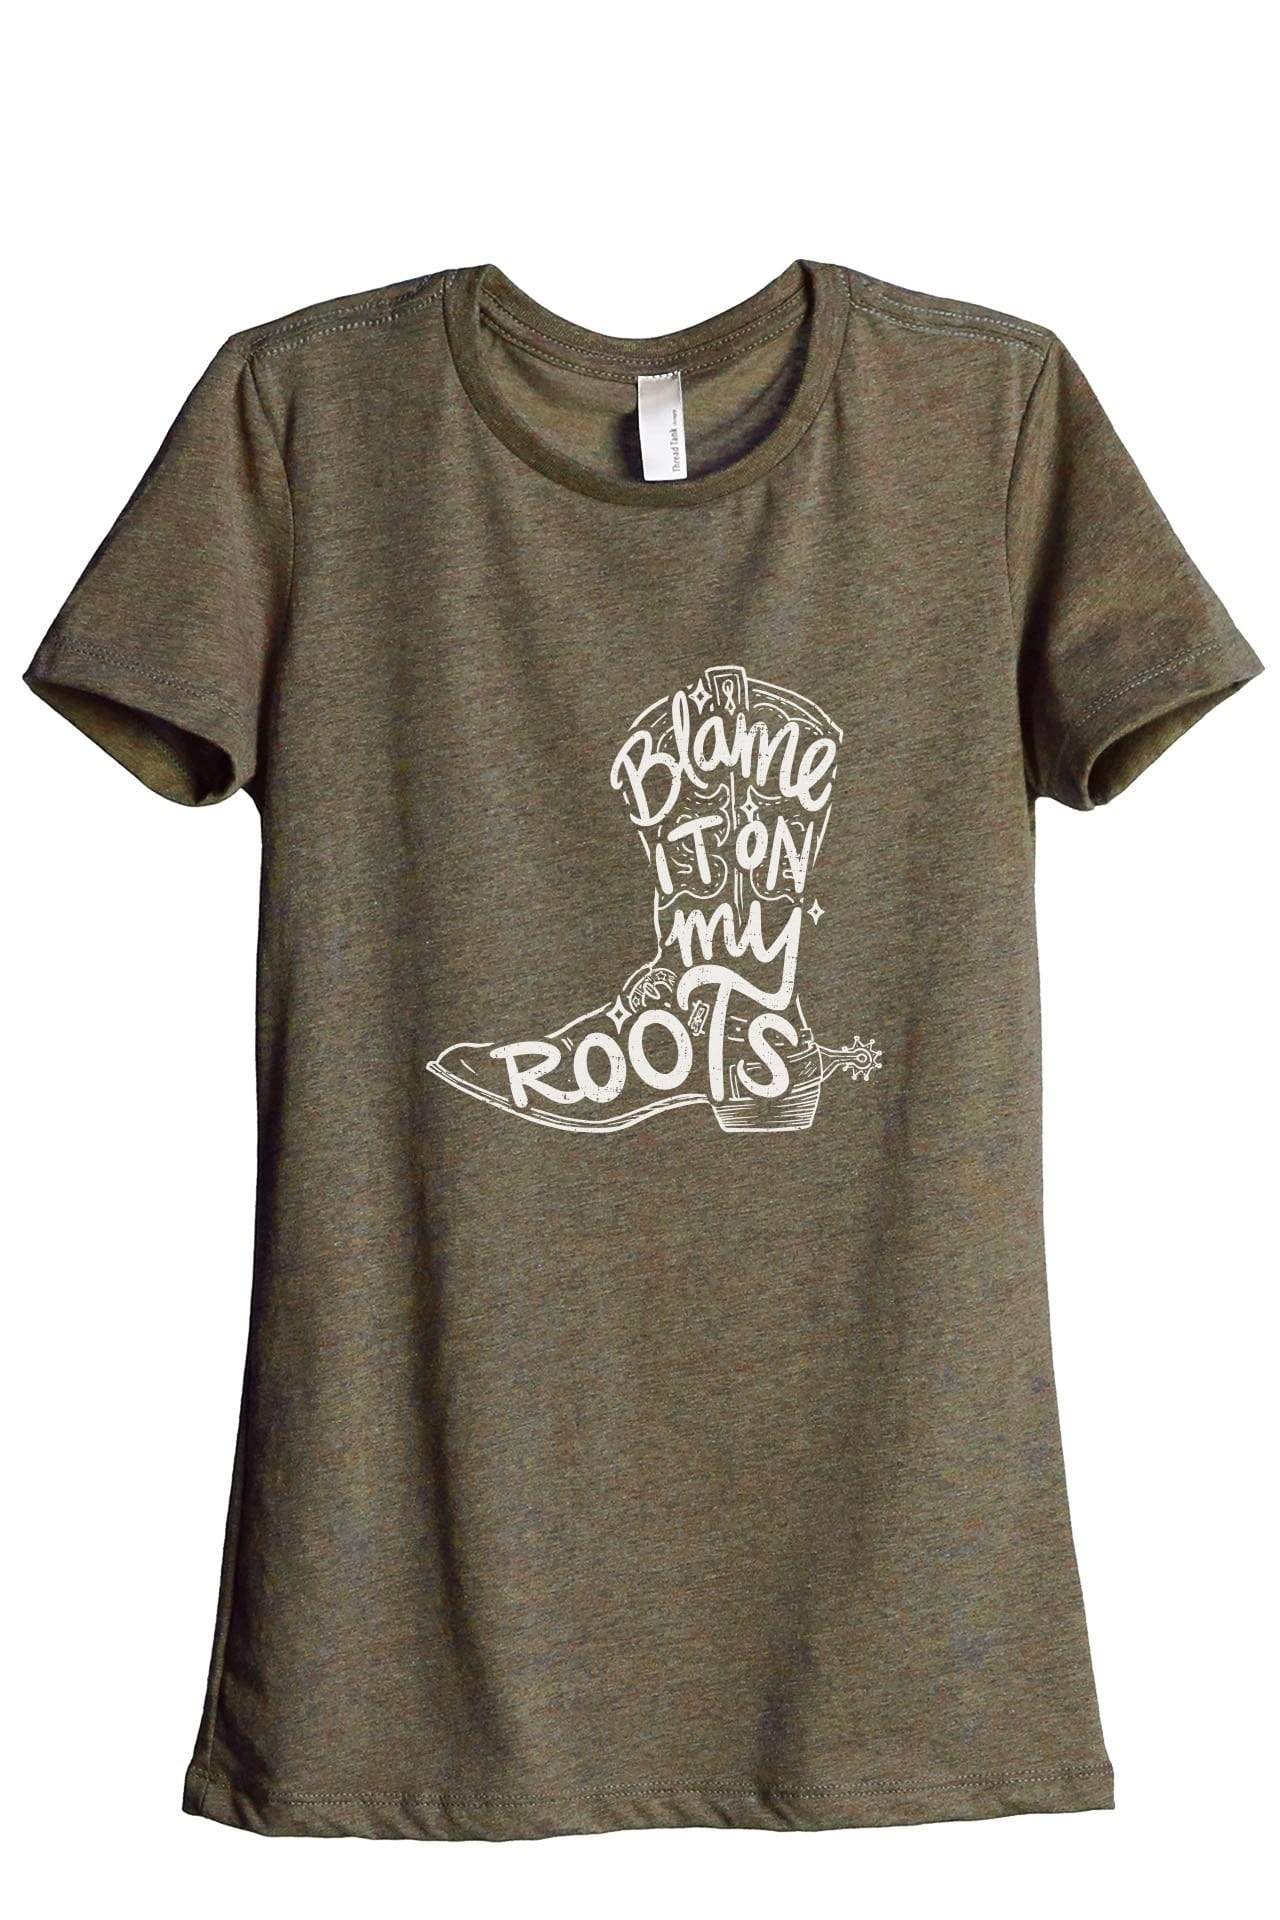 Blame It On My Roots - Thread Tank | Stories You Can Wear | T-Shirts, Tank Tops and Sweatshirts